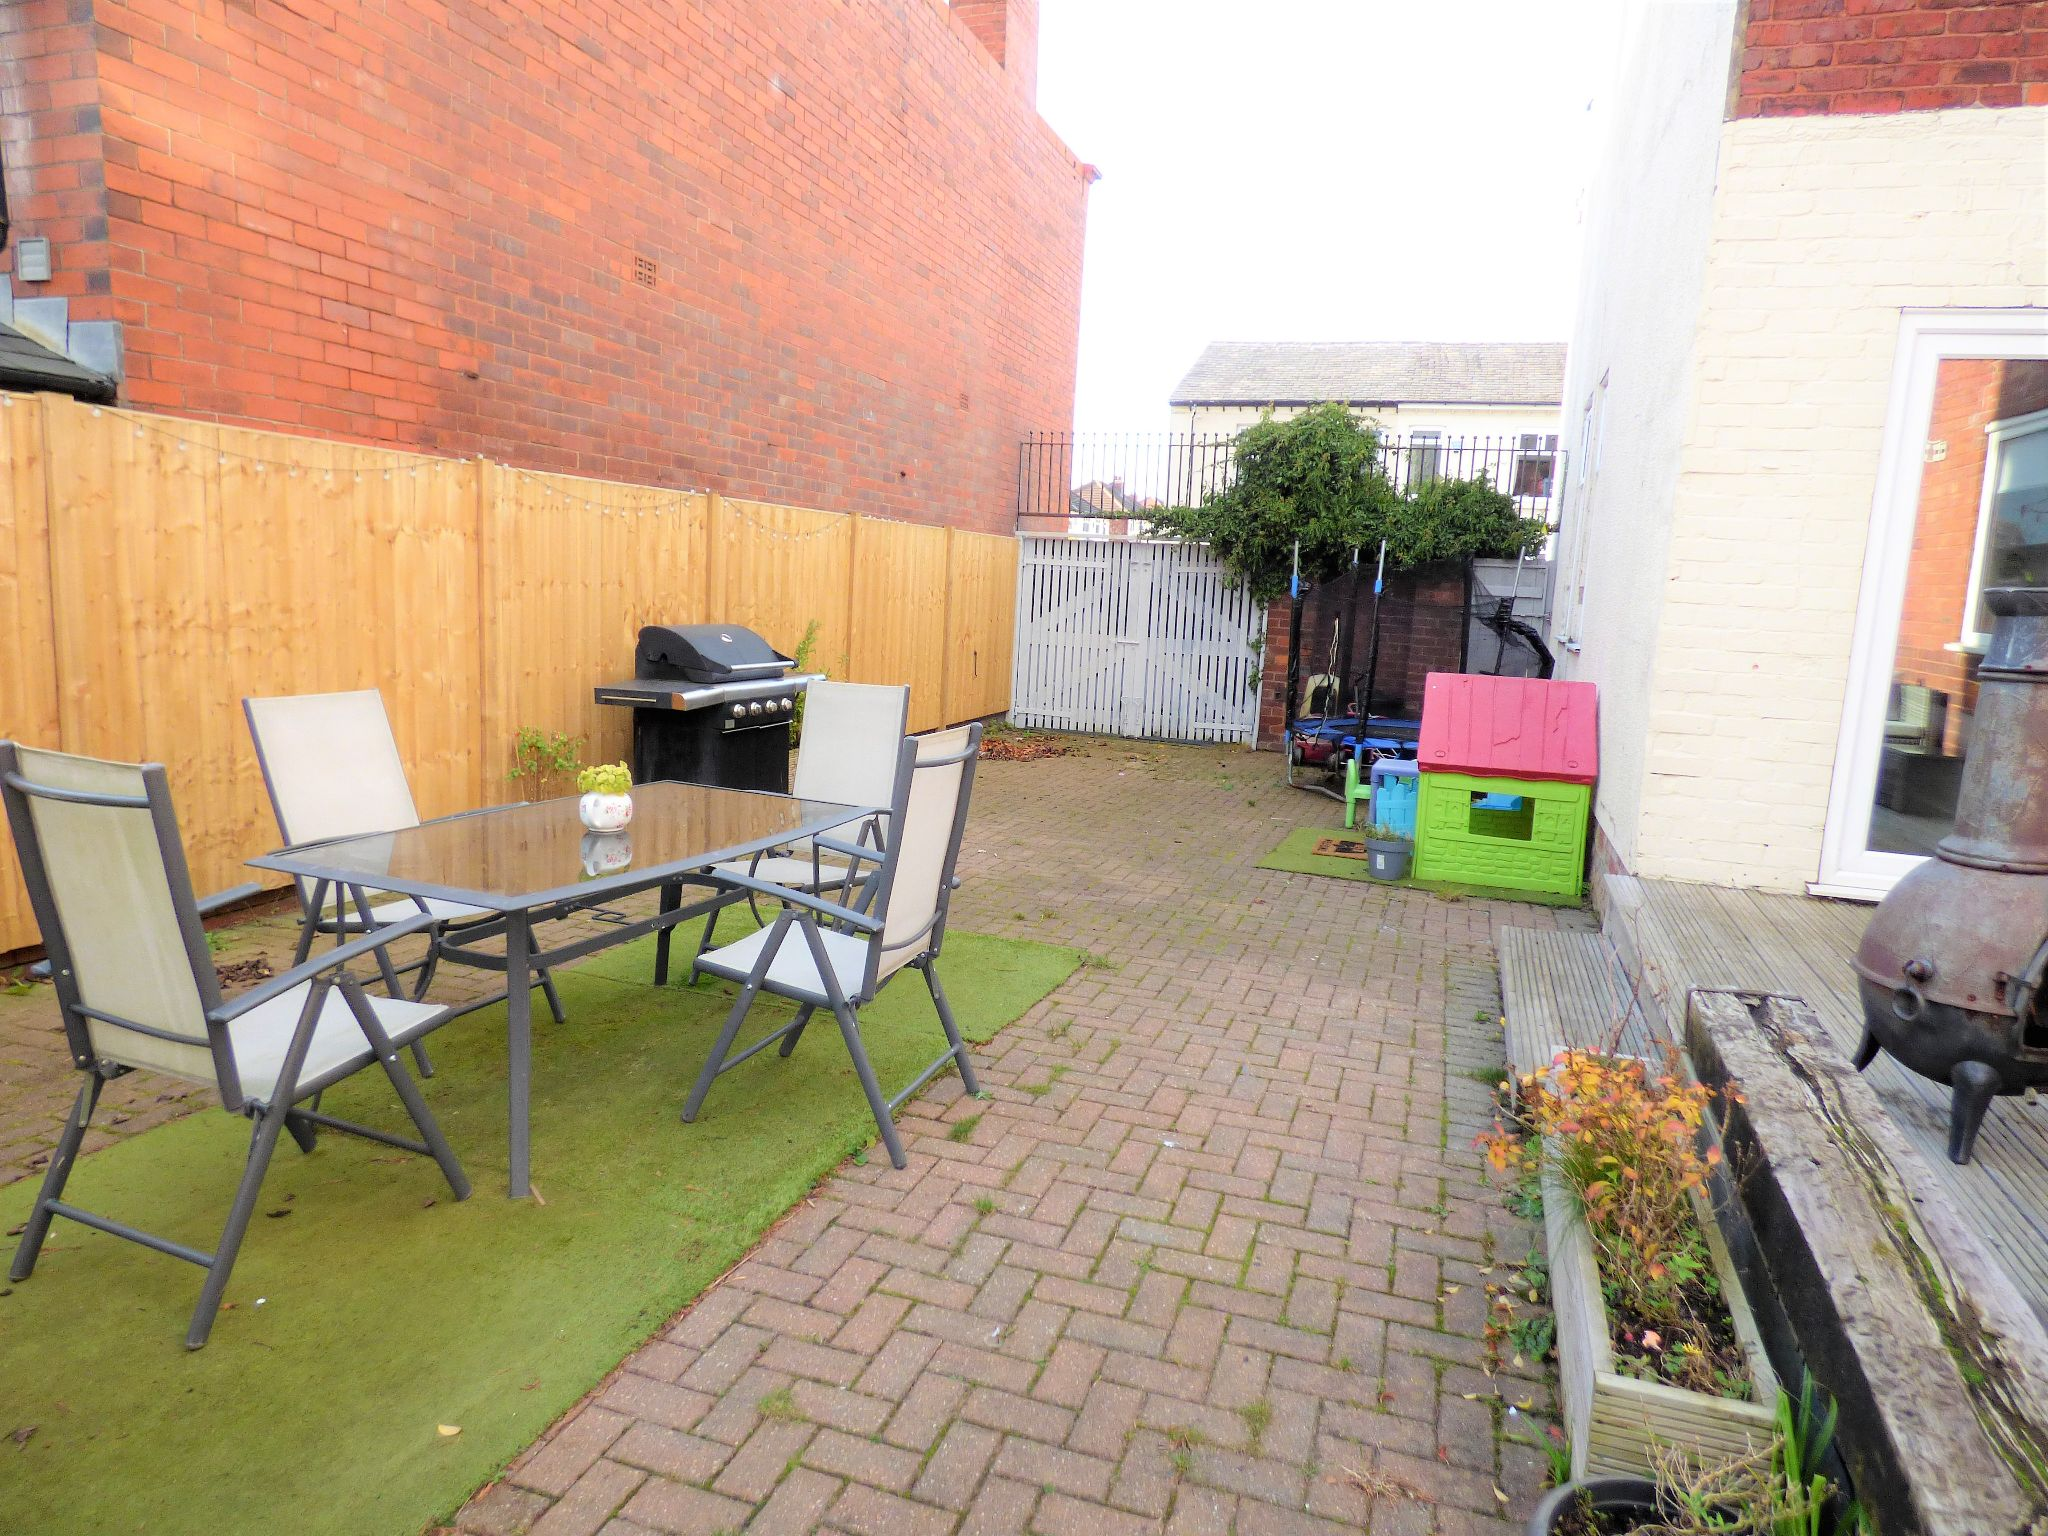 4 Bedroom Semi-detached House For Sale - Photograph 15